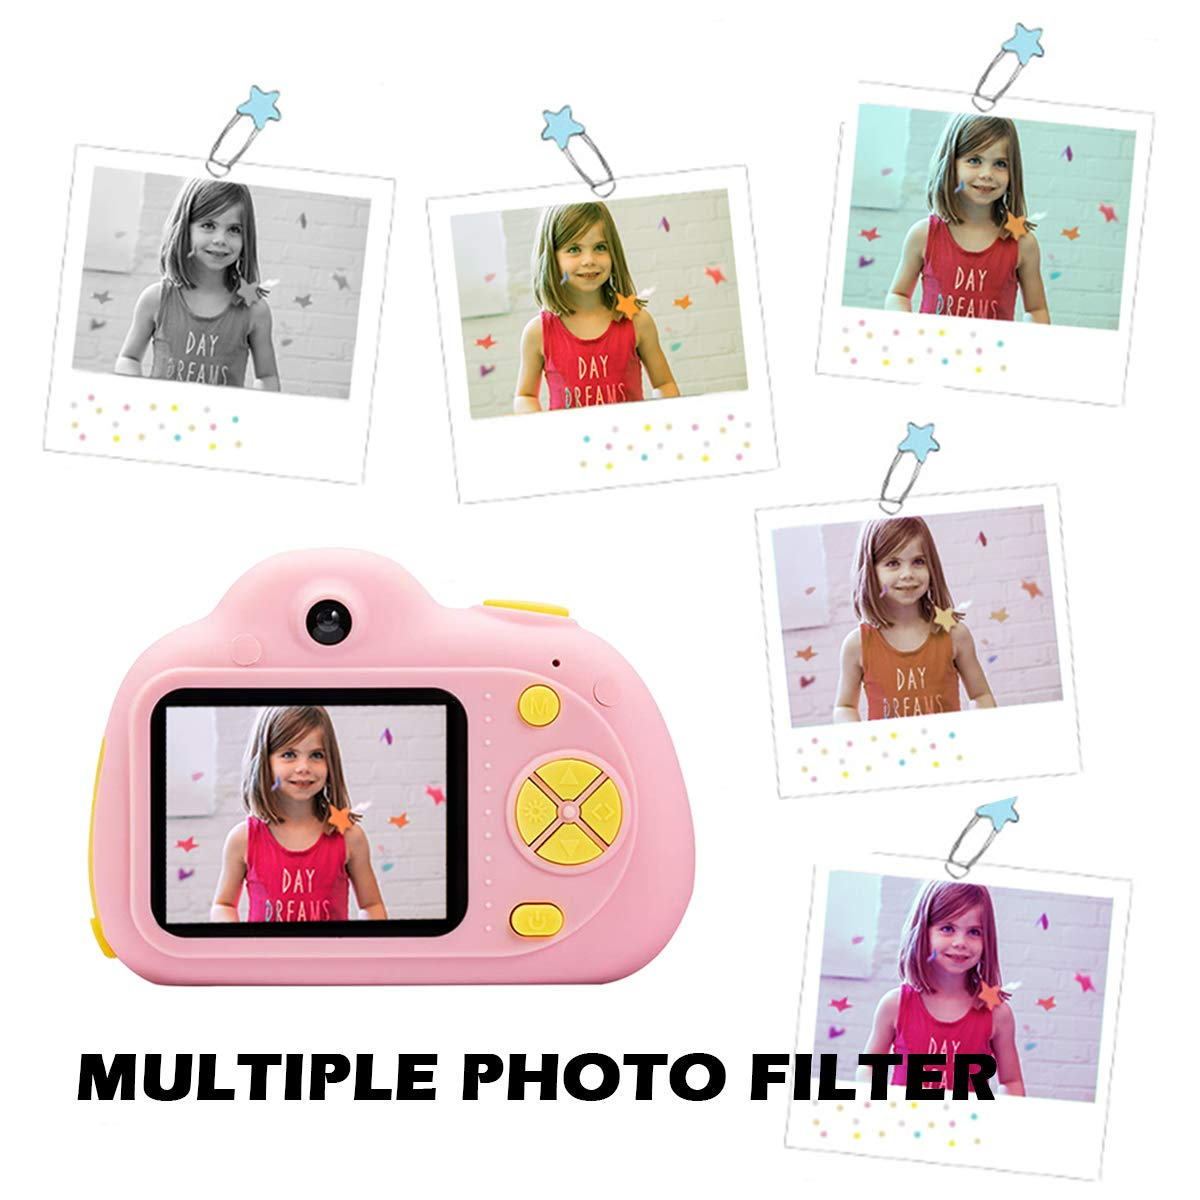 KIDOVE Kids Toys Fun Camera, Waterproof & Shockproof Child Selfie digital game Camcorder, 8MP 1080P dual camera Video Recorder, Creative Birthday Gifts for girls and boys, 16GB TF Card Included (Pink) by KIDOVE (Image #6)